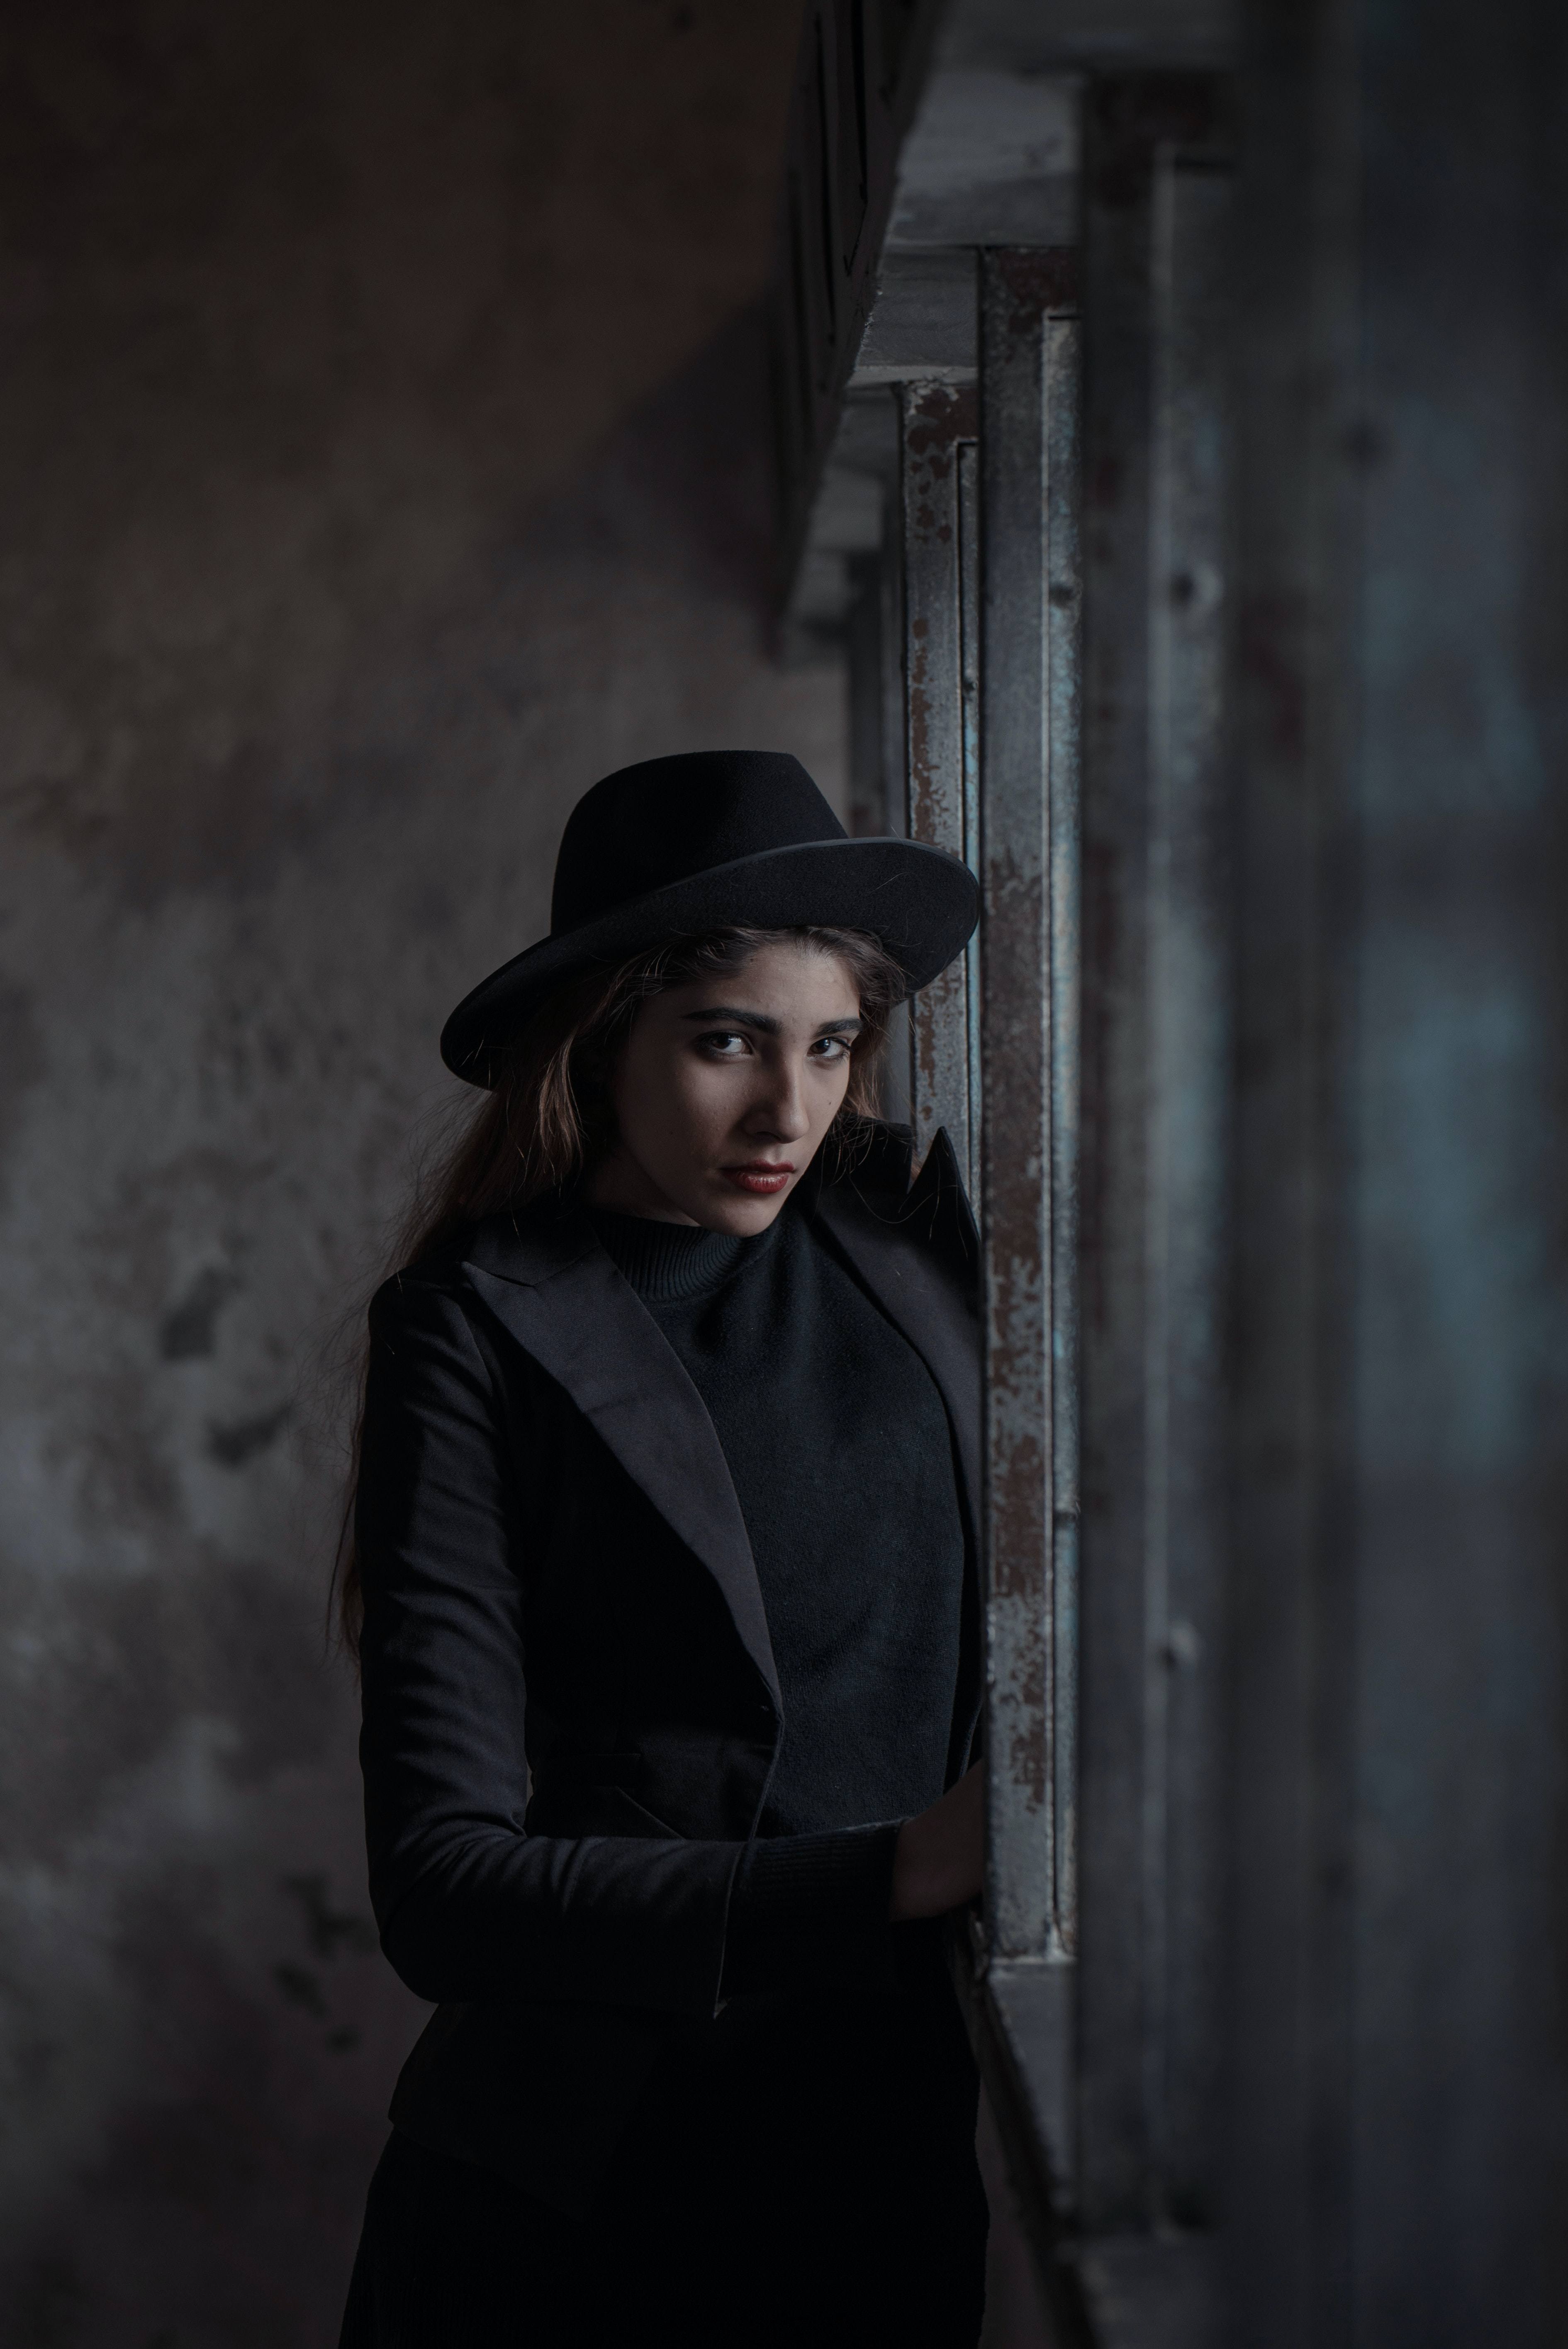 Woman in a black outfit looks up skeptically in an abandoned building